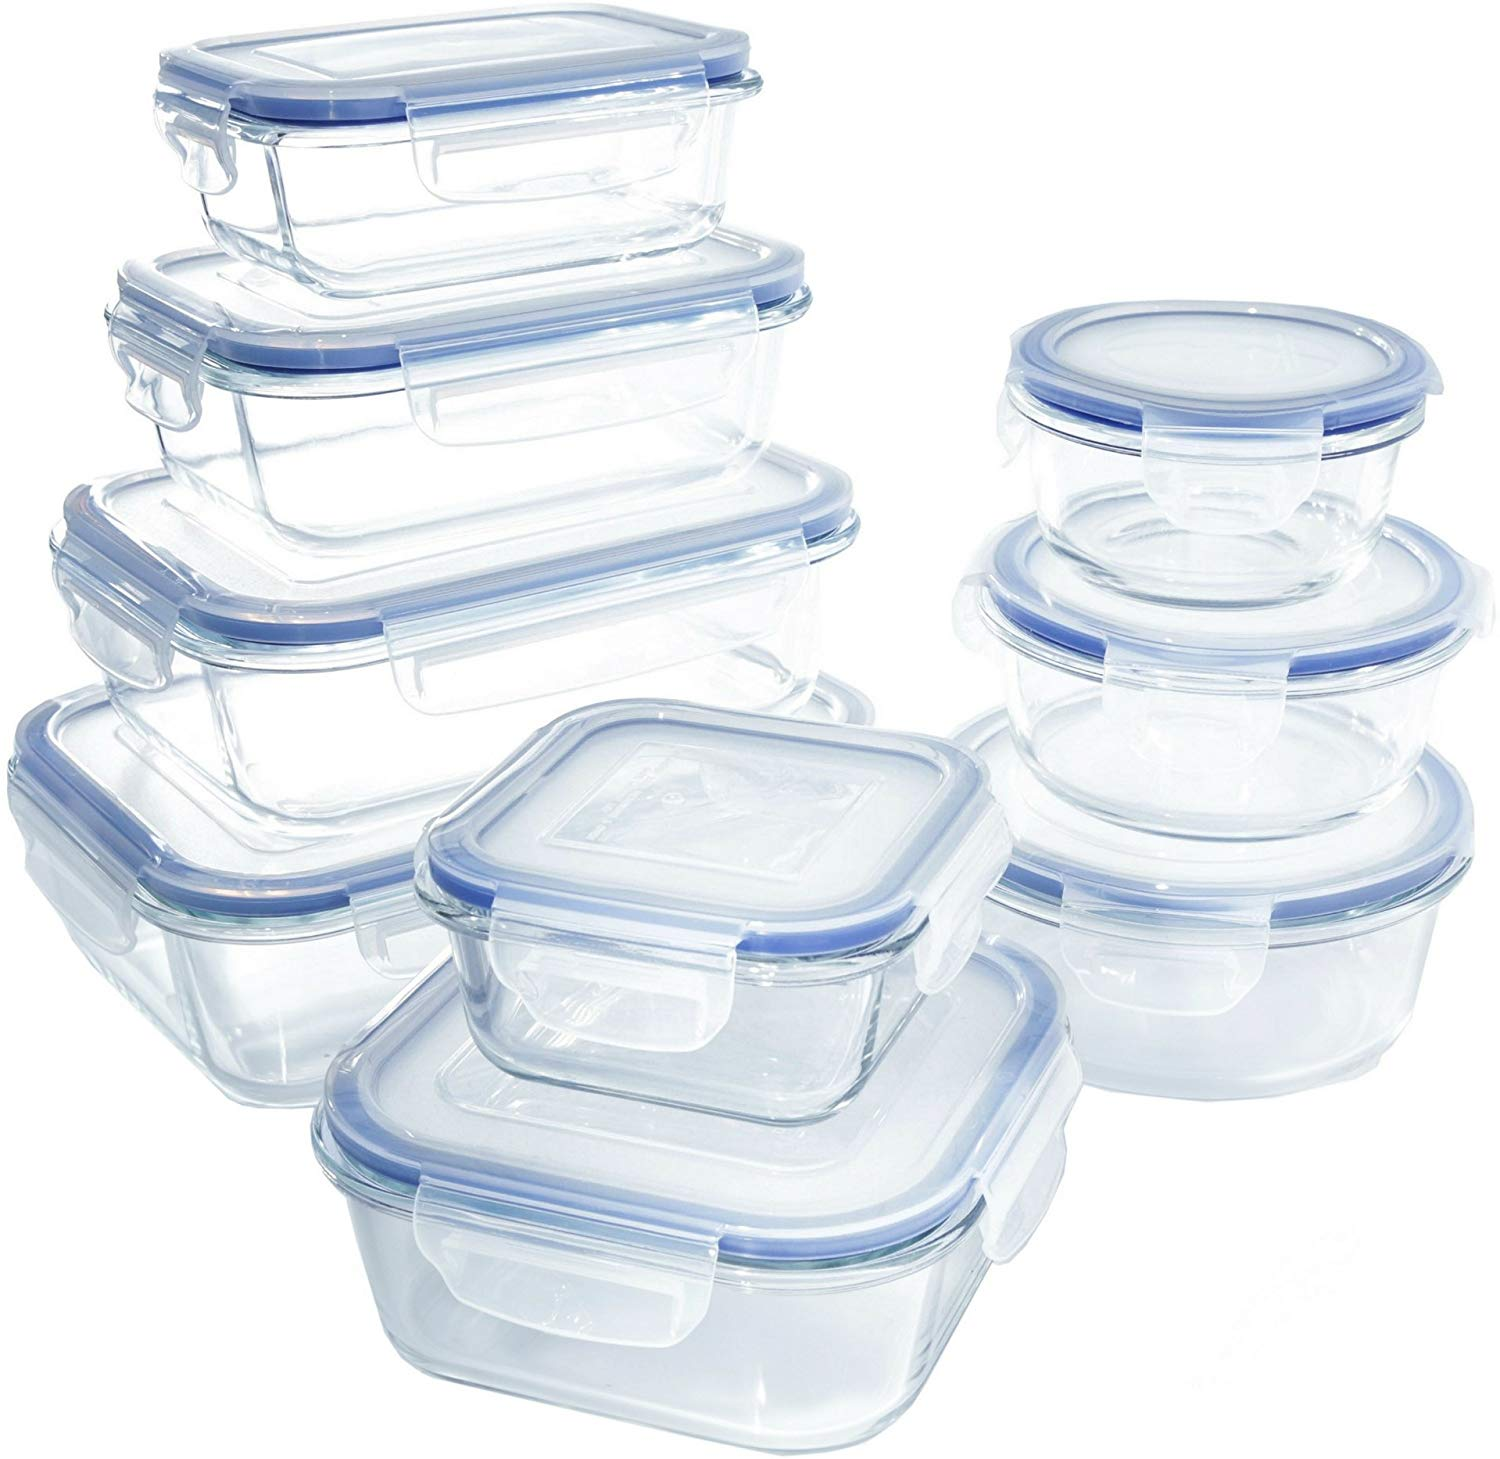 1790 Glass Food Storage Container Set With Lids 18 Pc